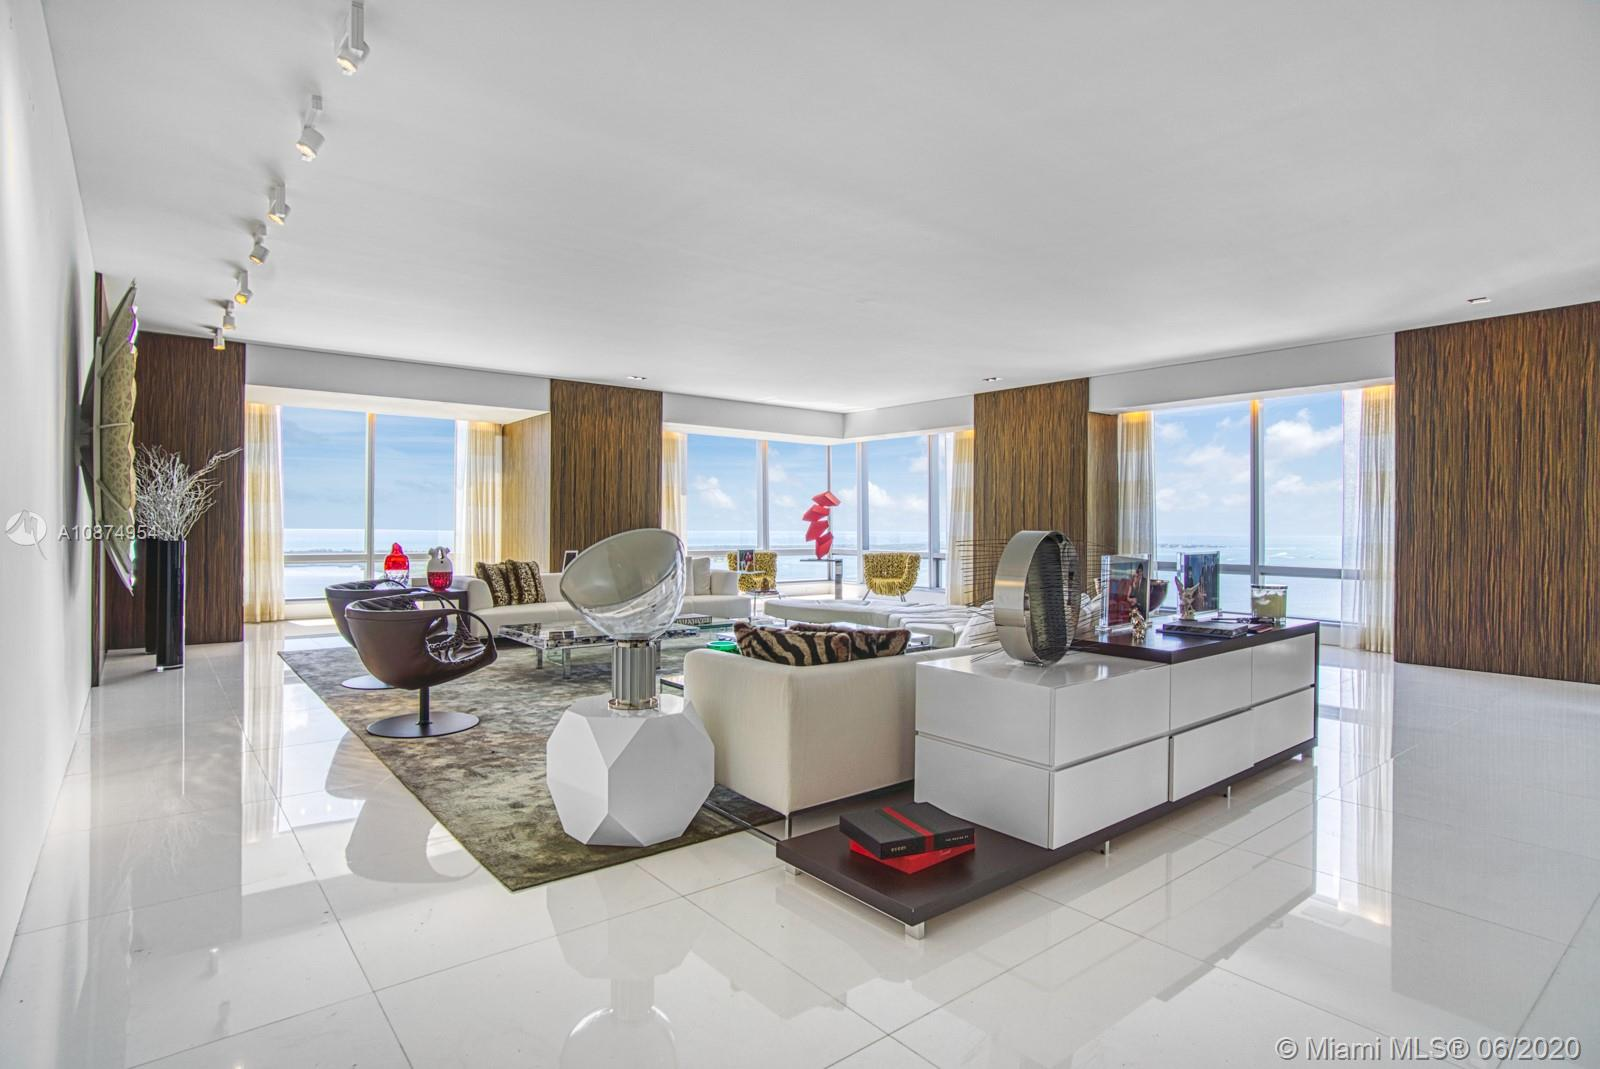 This world-class Four Seasons Miami residence offers extraordinary views of Biscayne Bay and Miami from almost every room. This magnificent corner unit combines the sought-after E & F lines into one incredible open floor-plan with spacious living room, formal dining room and large gourmet eat-in kitchen. Offering 5 expansive bedrooms with custom wood paneling and built-ins and 6.5 bathrooms with custom mosaic tile work. The Four Seasons Residences offer 5-star service, endless amenities, and an unparalleled luxury living experience. Unit offers 4 garage parking spaces and has a prime Brickell location close to dining and shopping. Unit Sq Ft total for 52EF is 7,104 combining 52E 3,357 and 52F 3,747 unit sq ft.